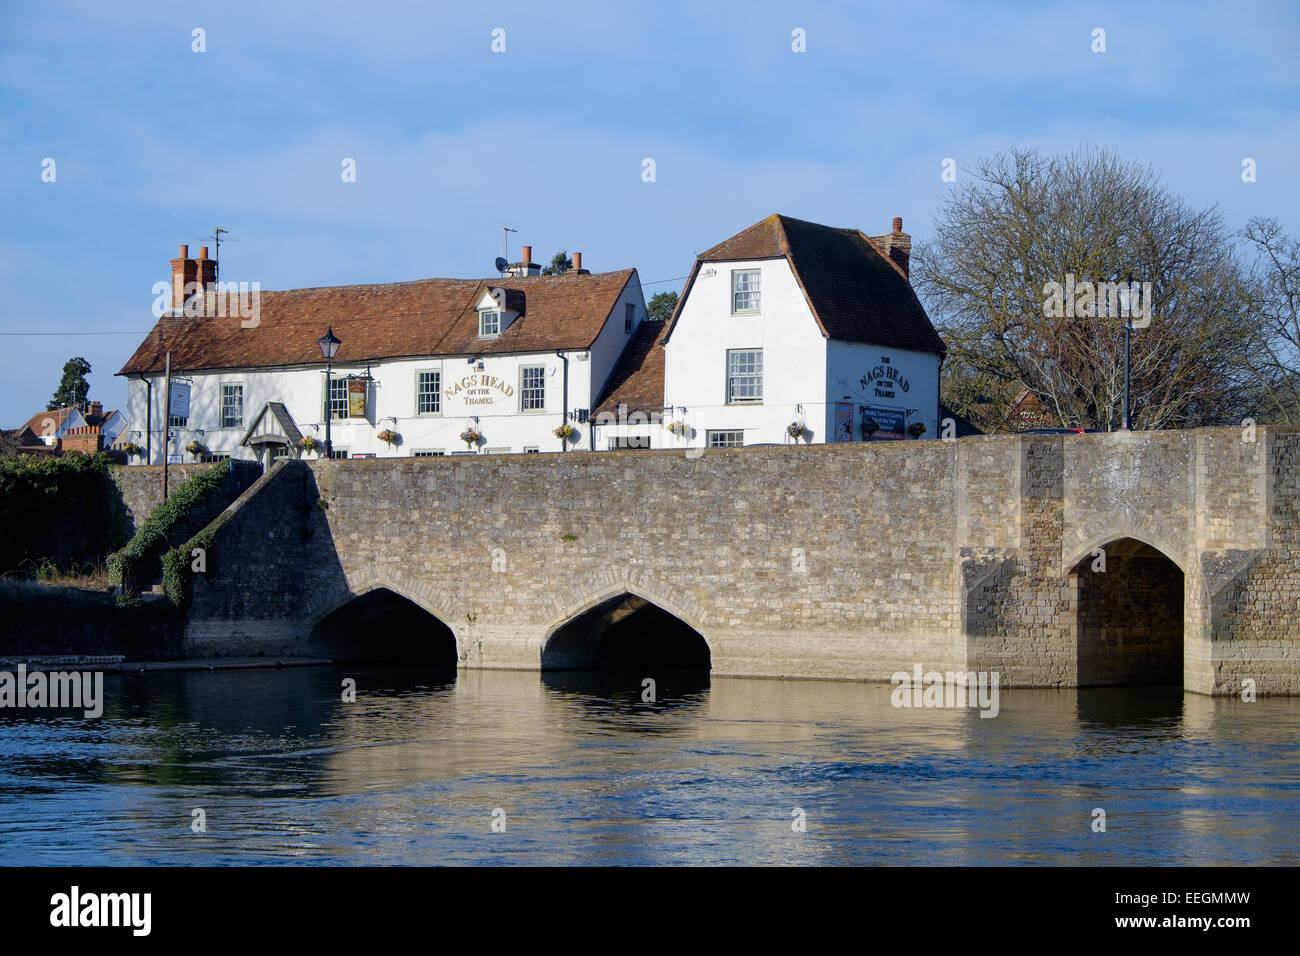 The Nag's Head pub on the old stone road bridge over the River Thames, in Abingdon, Oxfordshire. - Stock Image